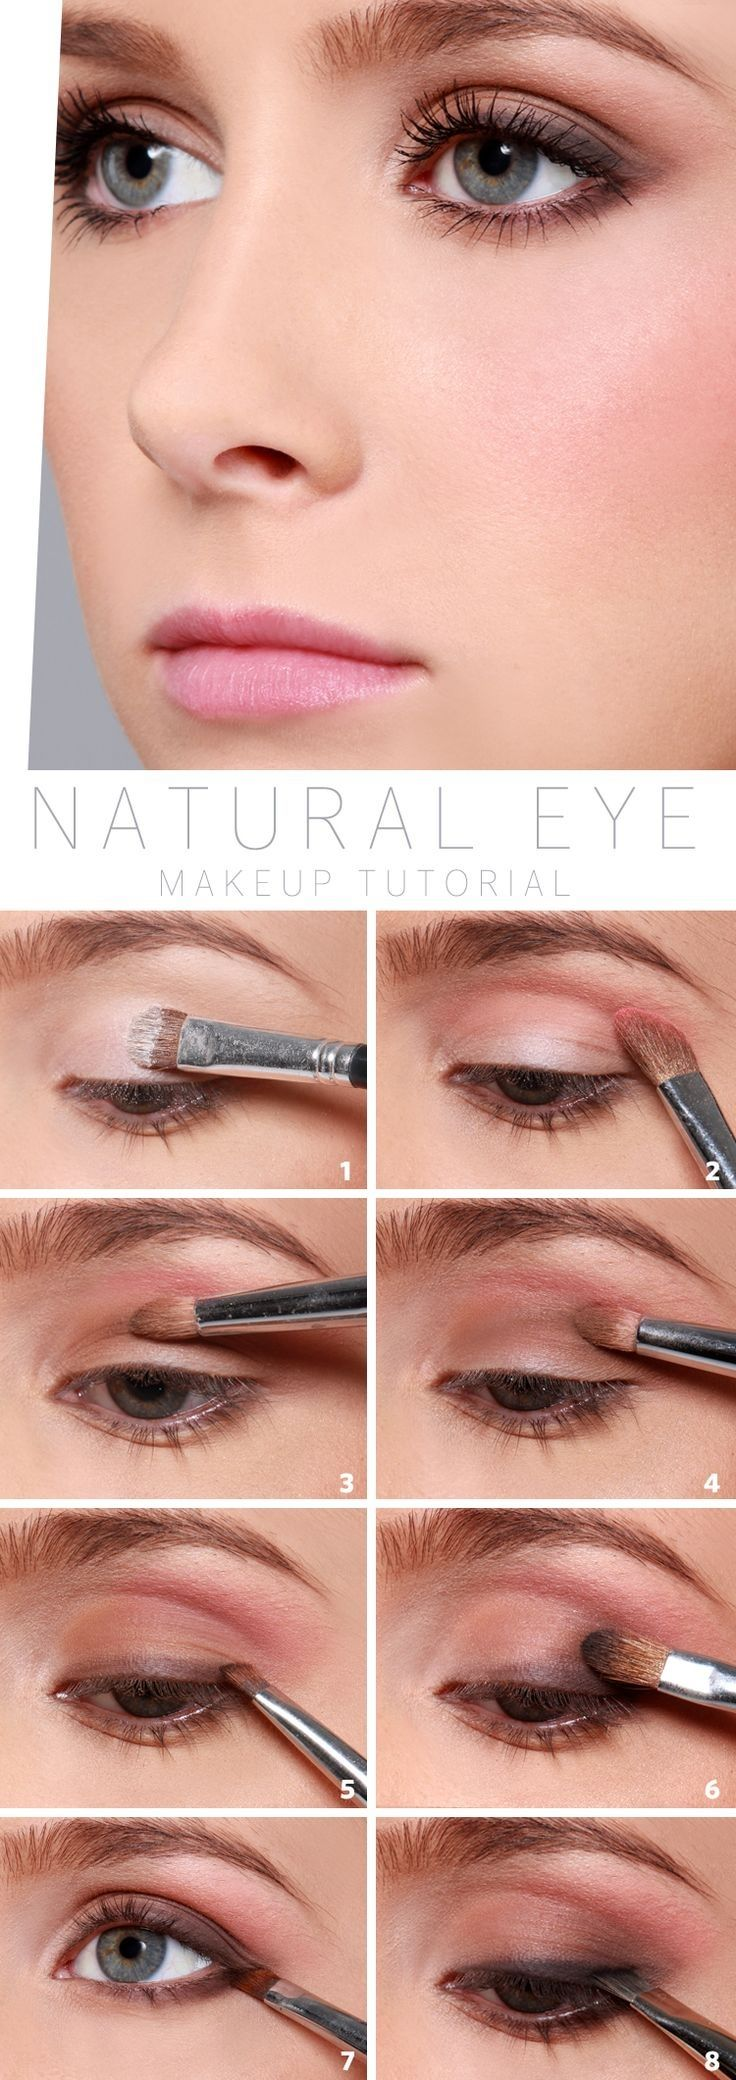 Top 10 Tutorials for Natural Eye Make-Up>> Looks like a lot of work for a 'natural look' but it is pretty